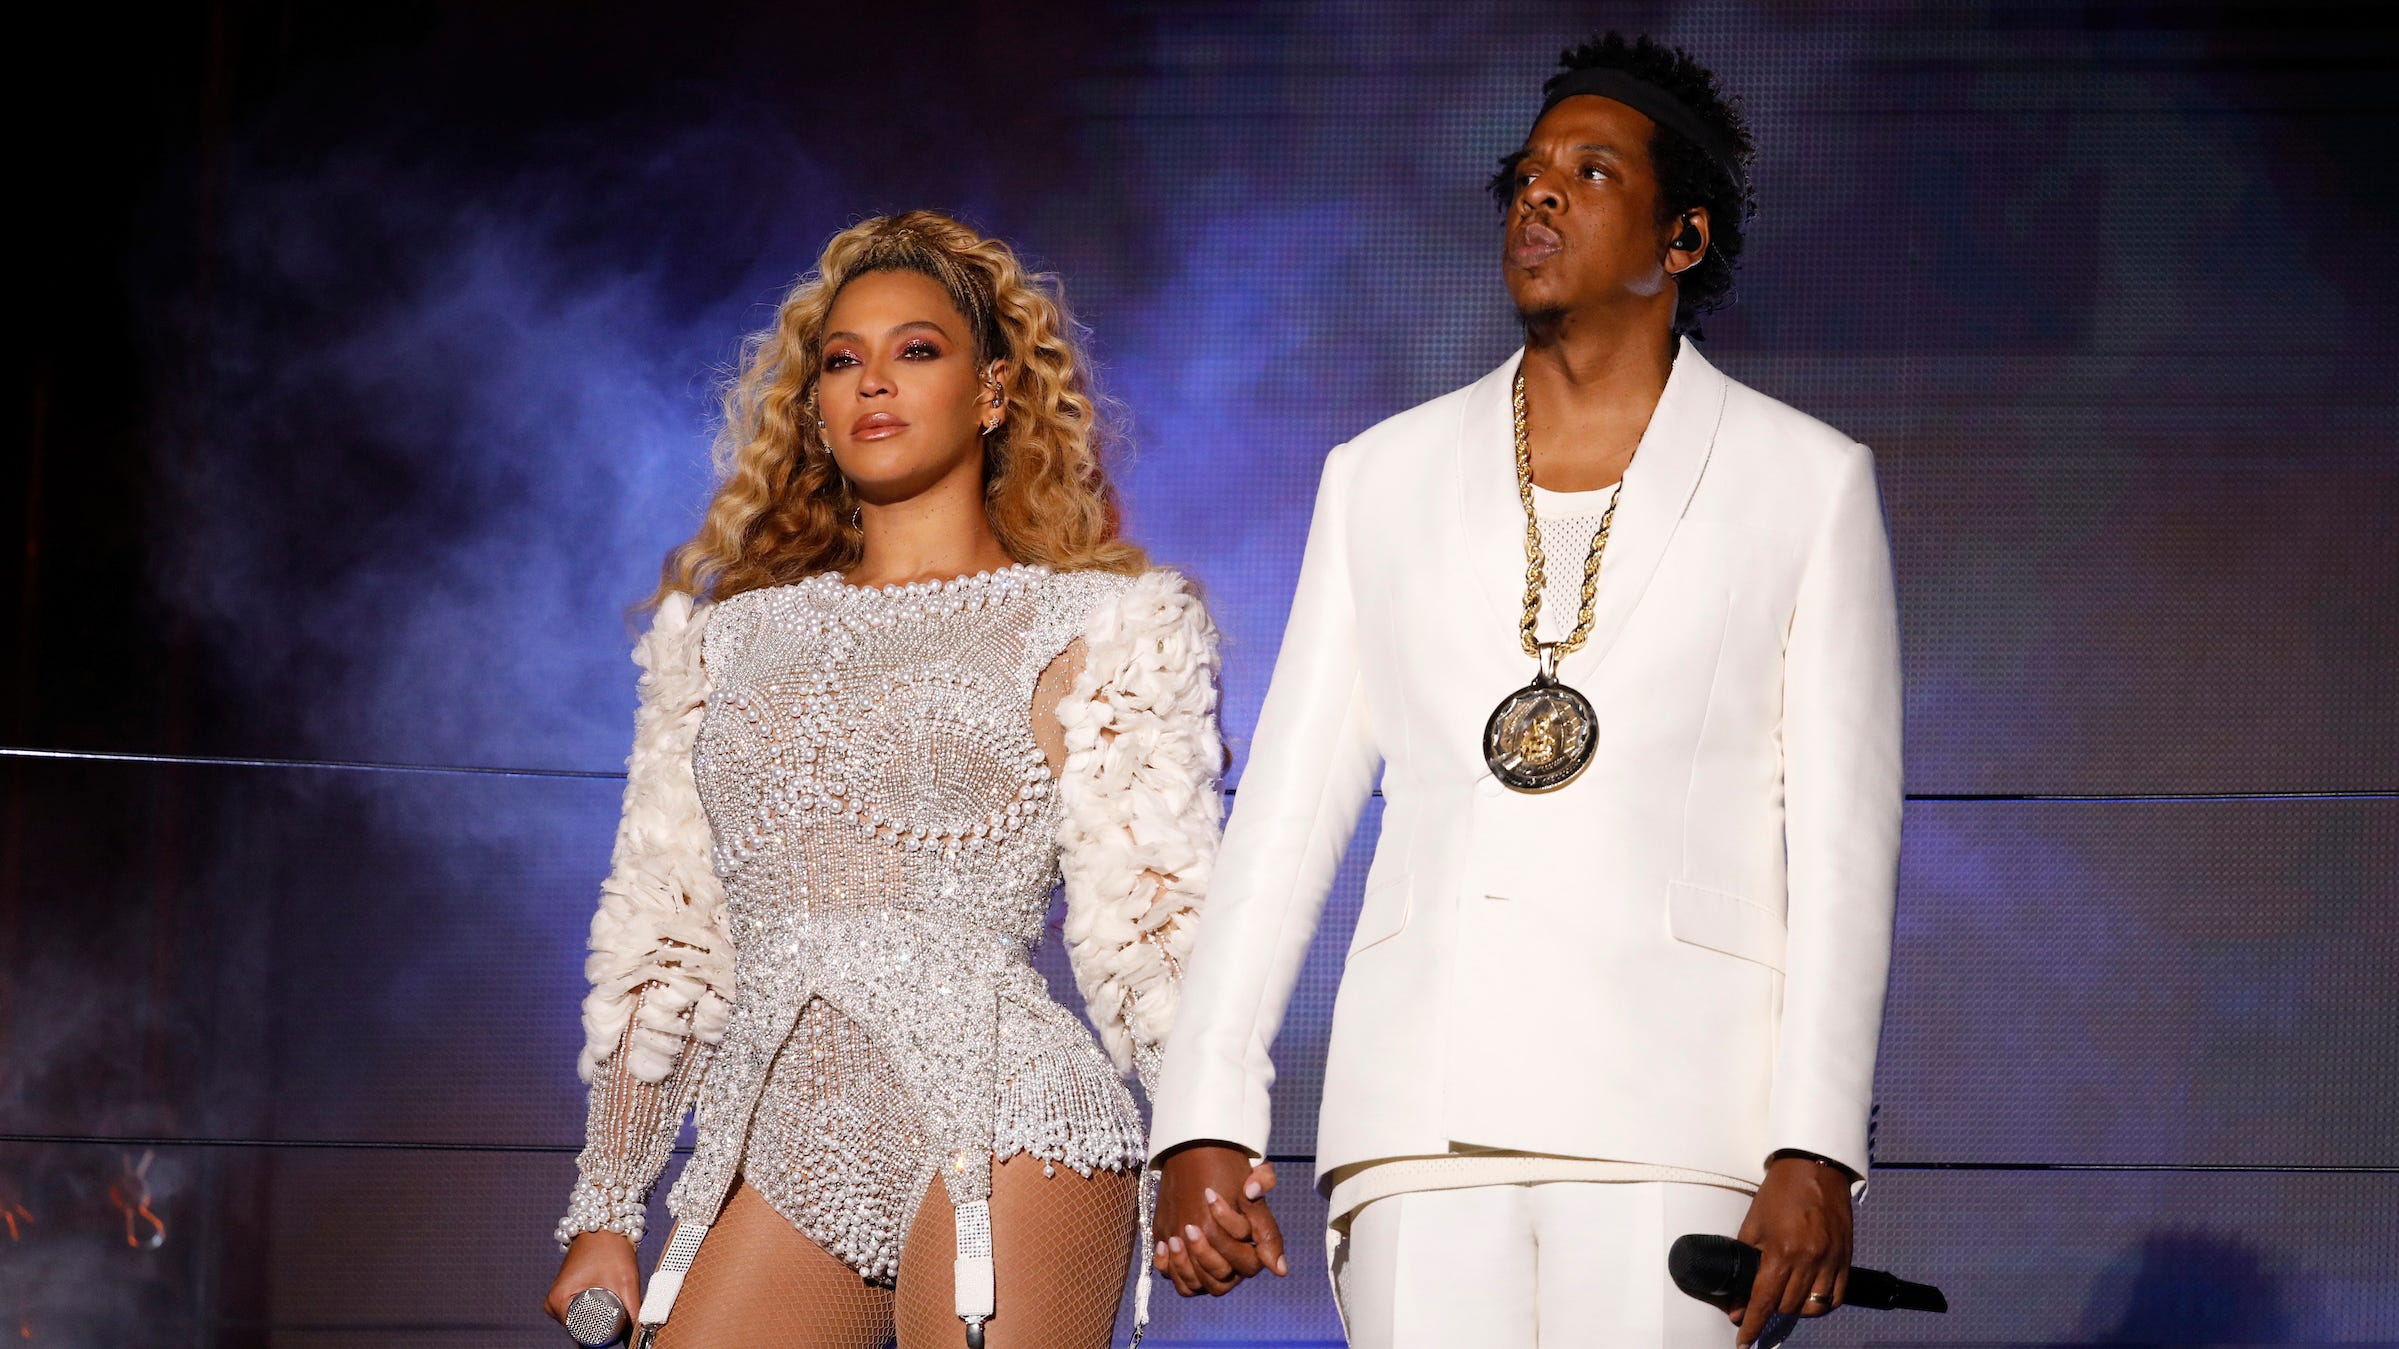 NASHVILLE - AUGUST 23: Beyonce and Jay-Z perform on the 'On The Run II' tour at Vanderbilt Stadium on August 23, 2018 in Nashville, Tennessee. (Photo by Raven Varona/Parkwood/PictureGroup)